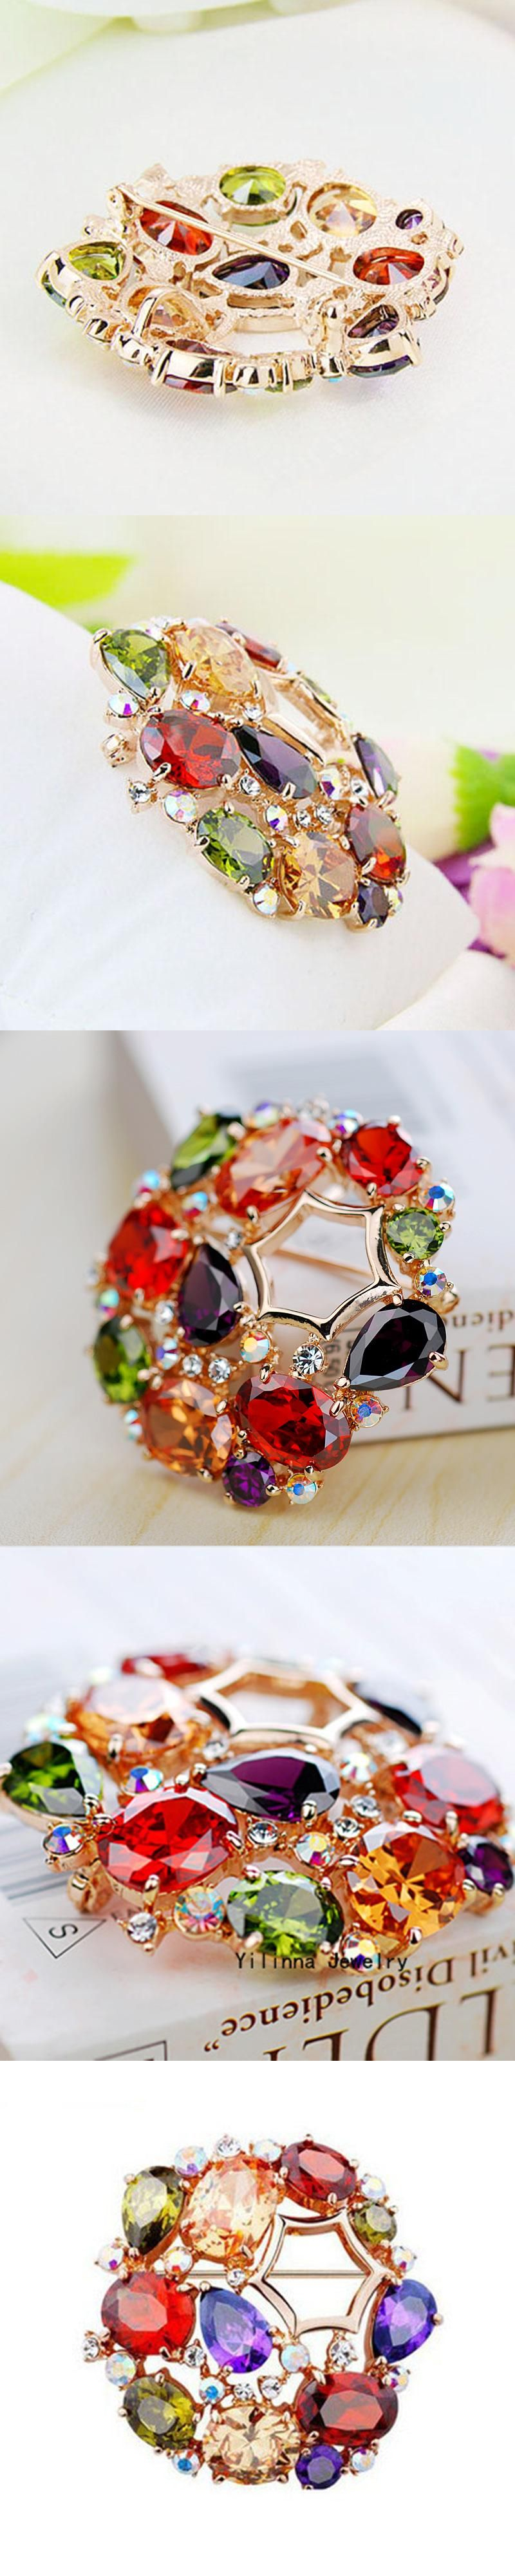 sale new s of trend the women version fashion pin ring party jewellery korean lady jewelry